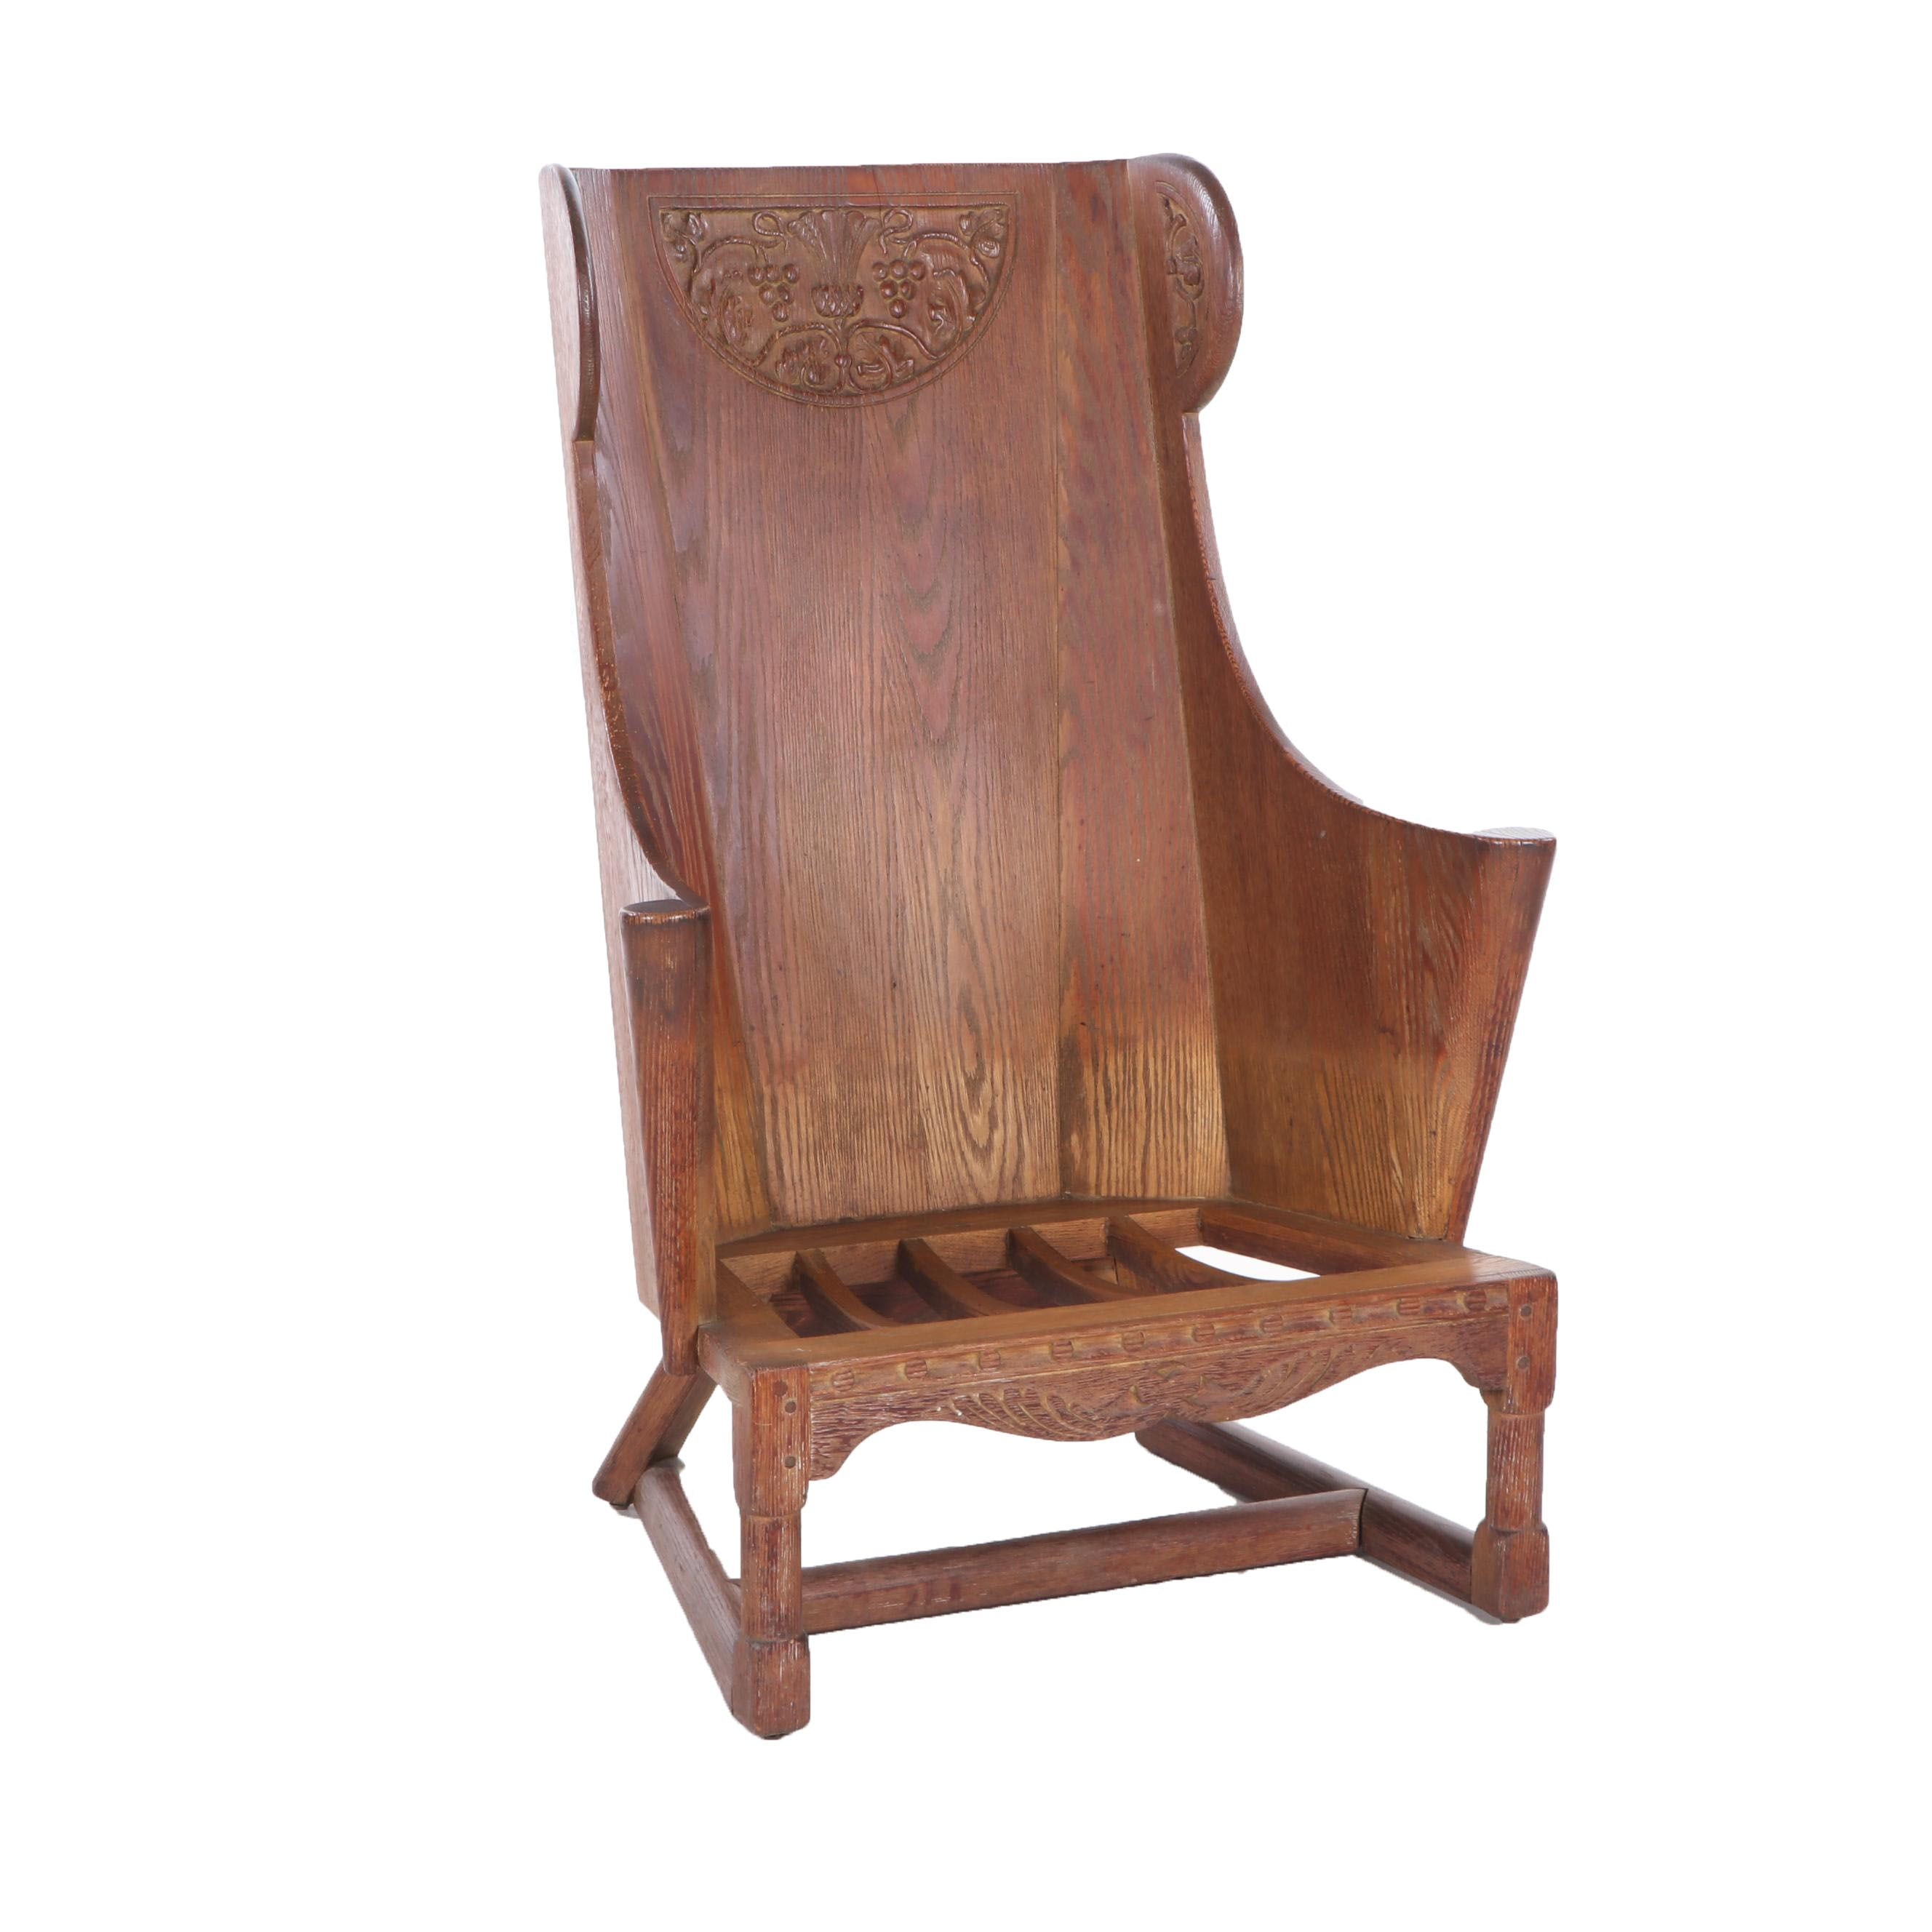 Arts and Crafts Style Carved Oak Lambing Chair, Early/Mid 20th Century